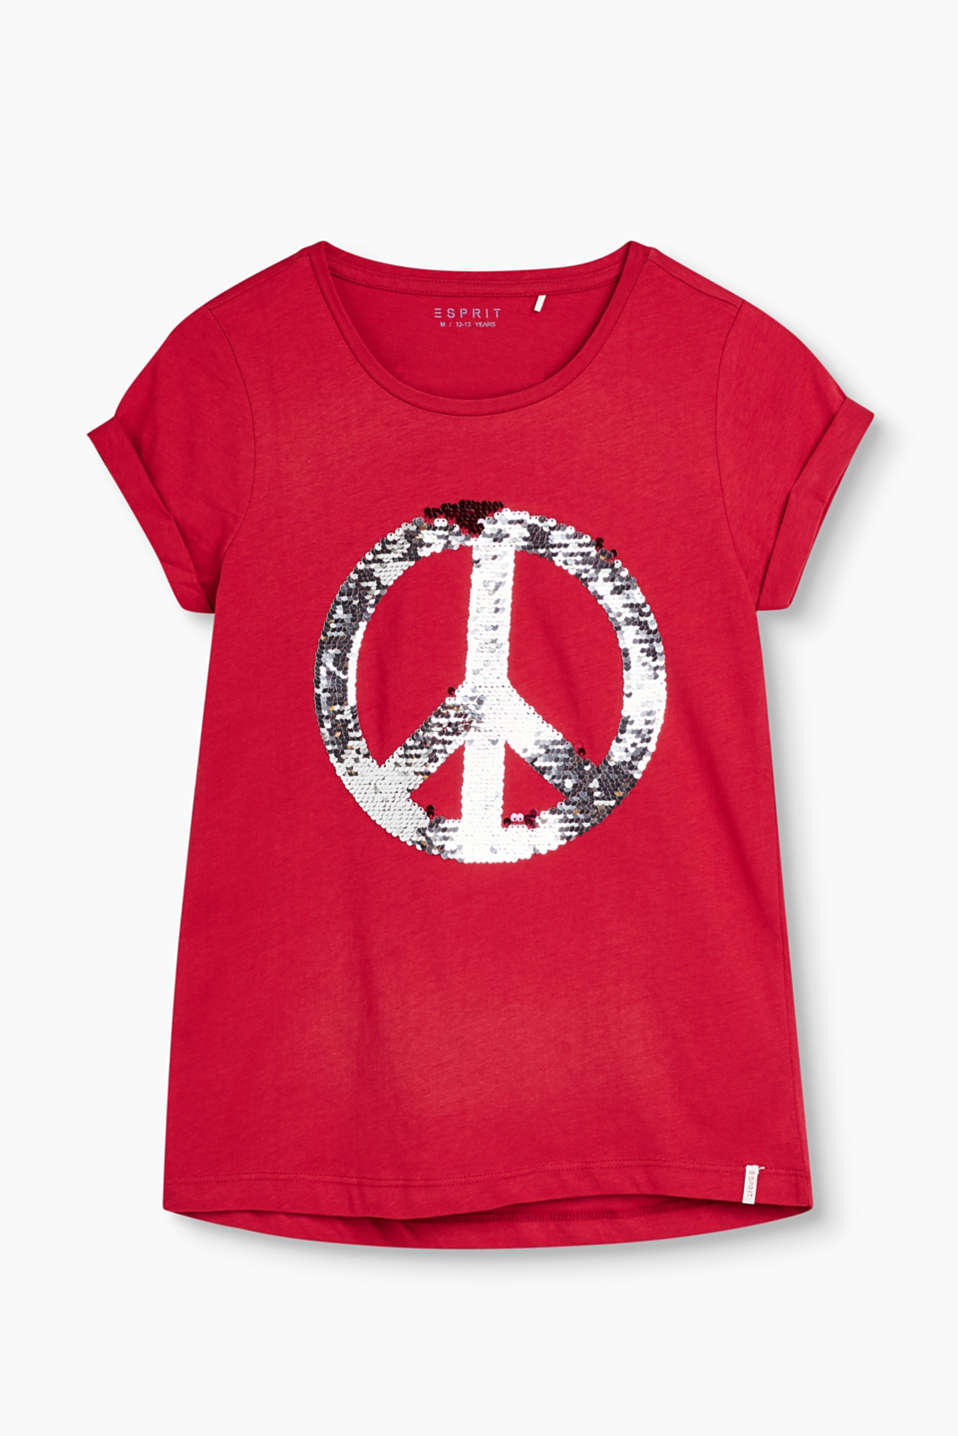 PEACE! T-shirt with a shiny sequin appliqué, in 100% cotton